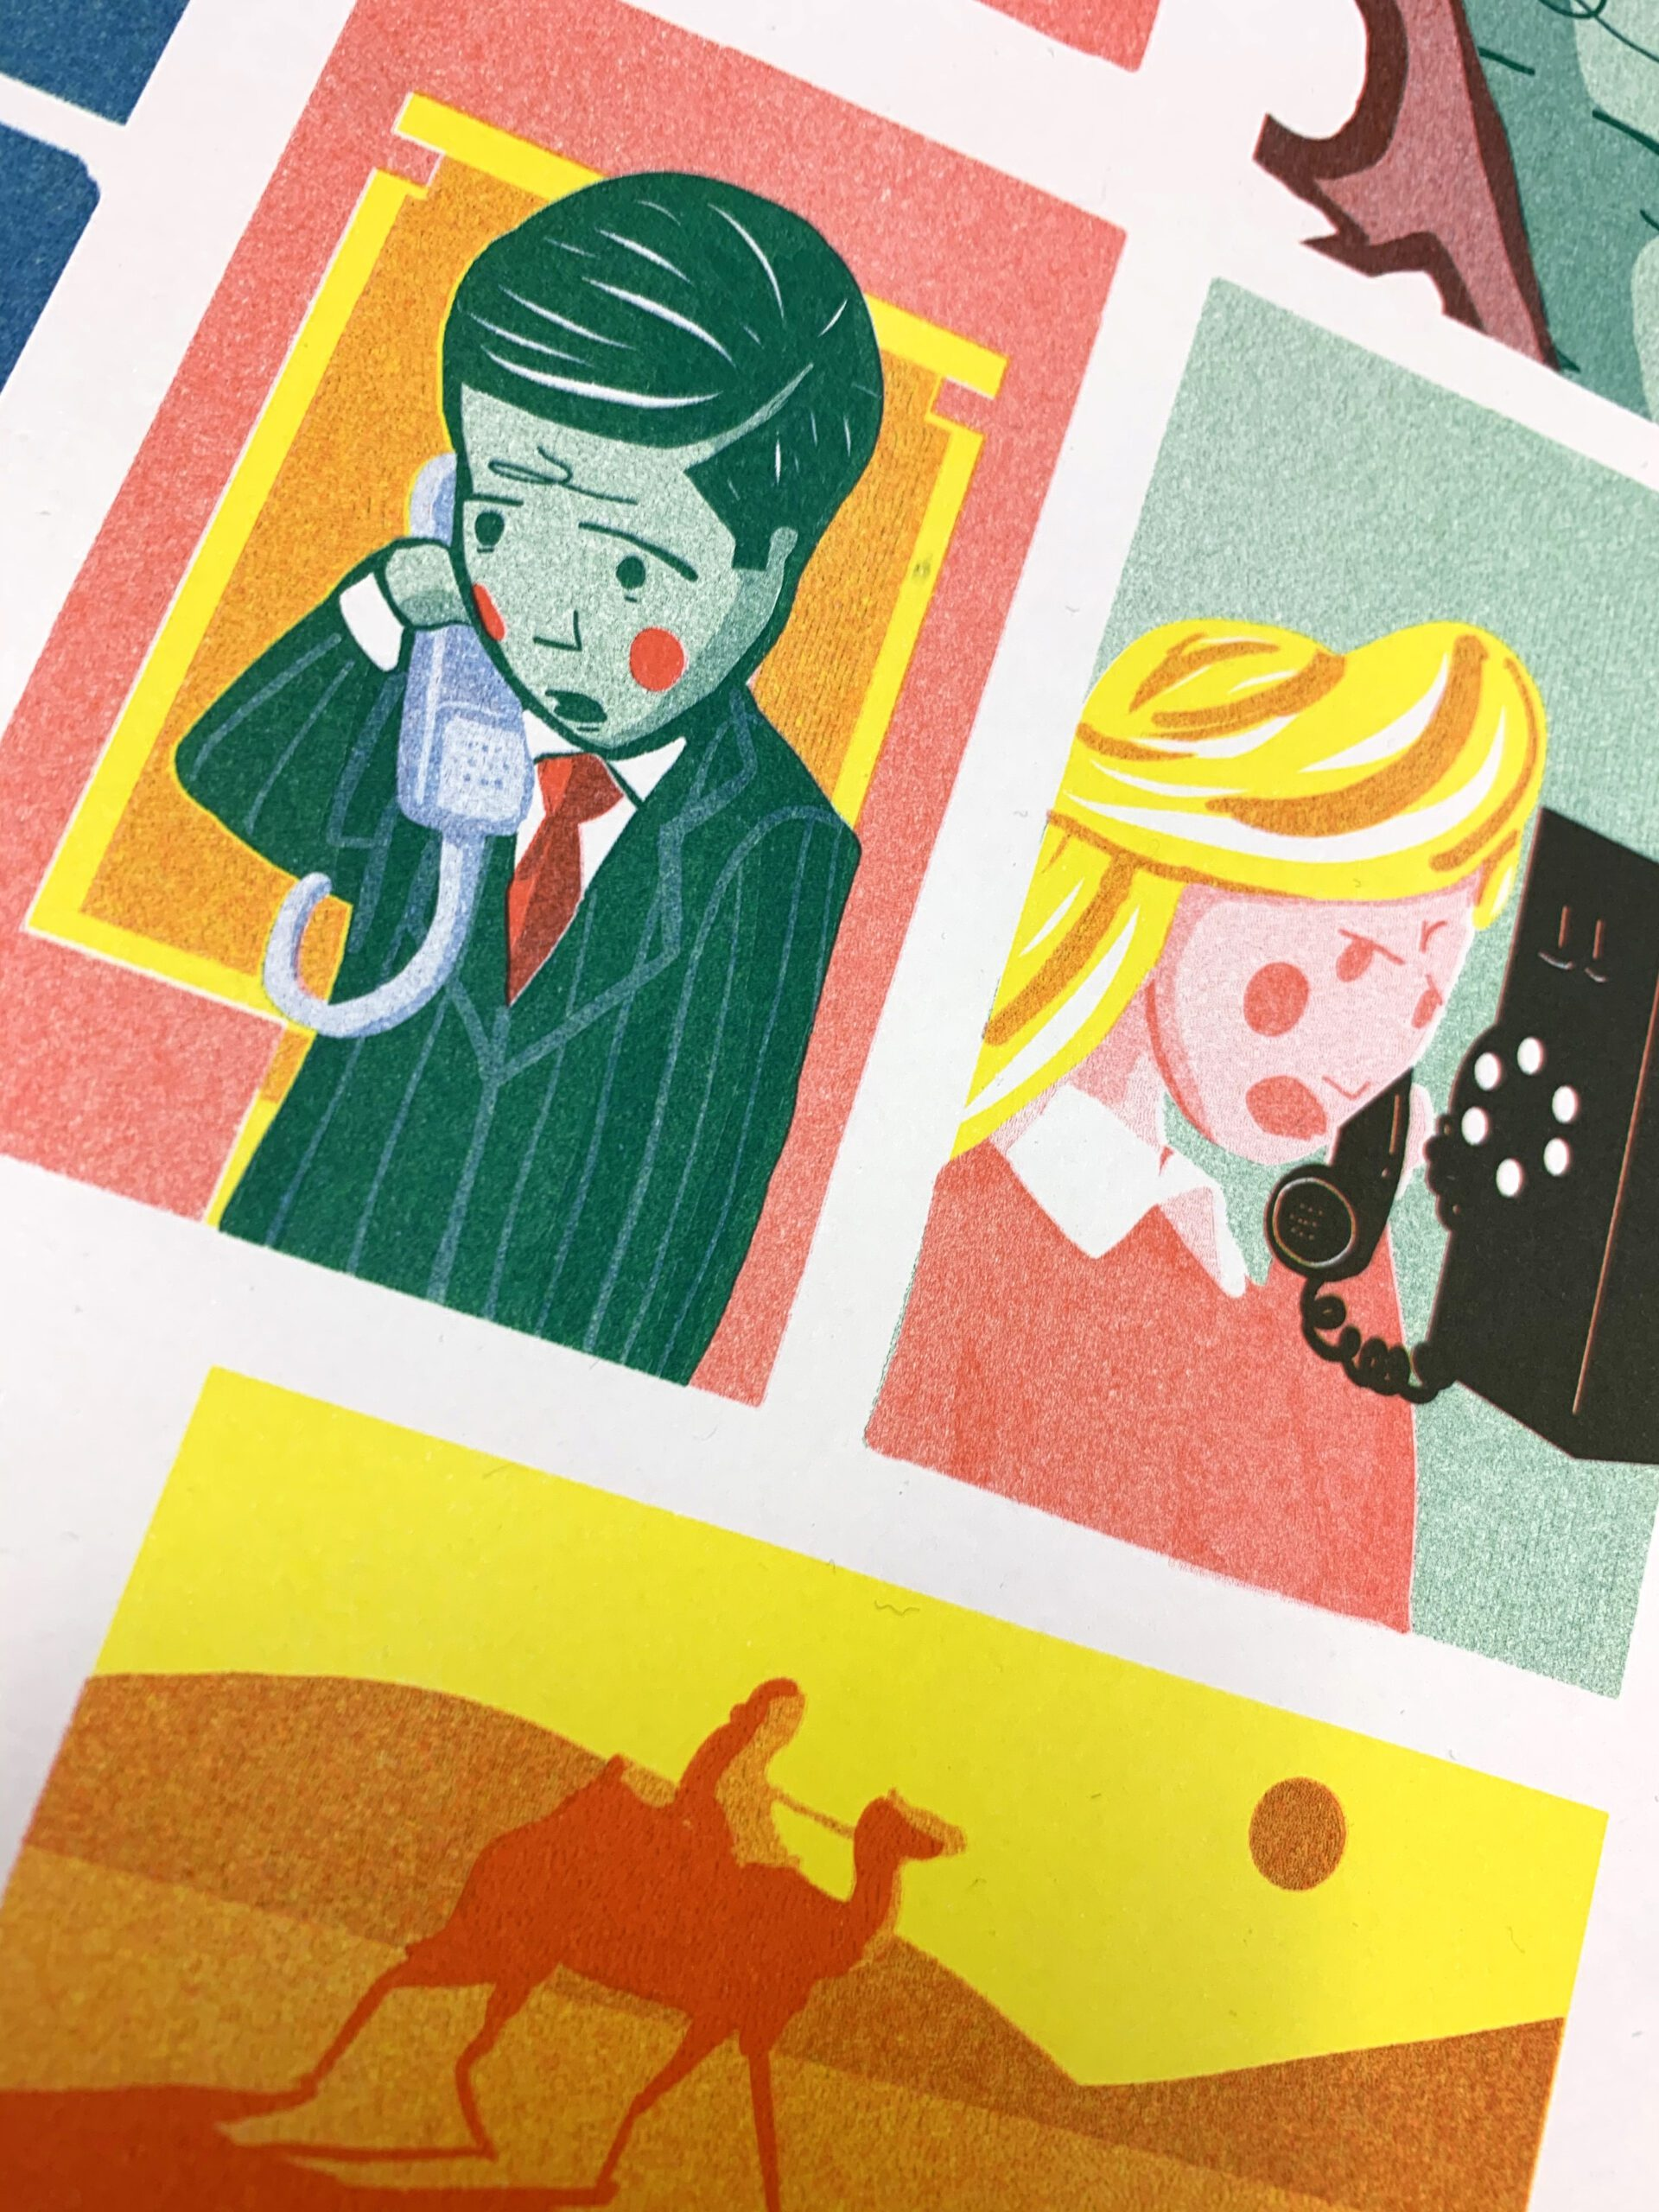 The Mouths of Many Leopards – Risograph Print